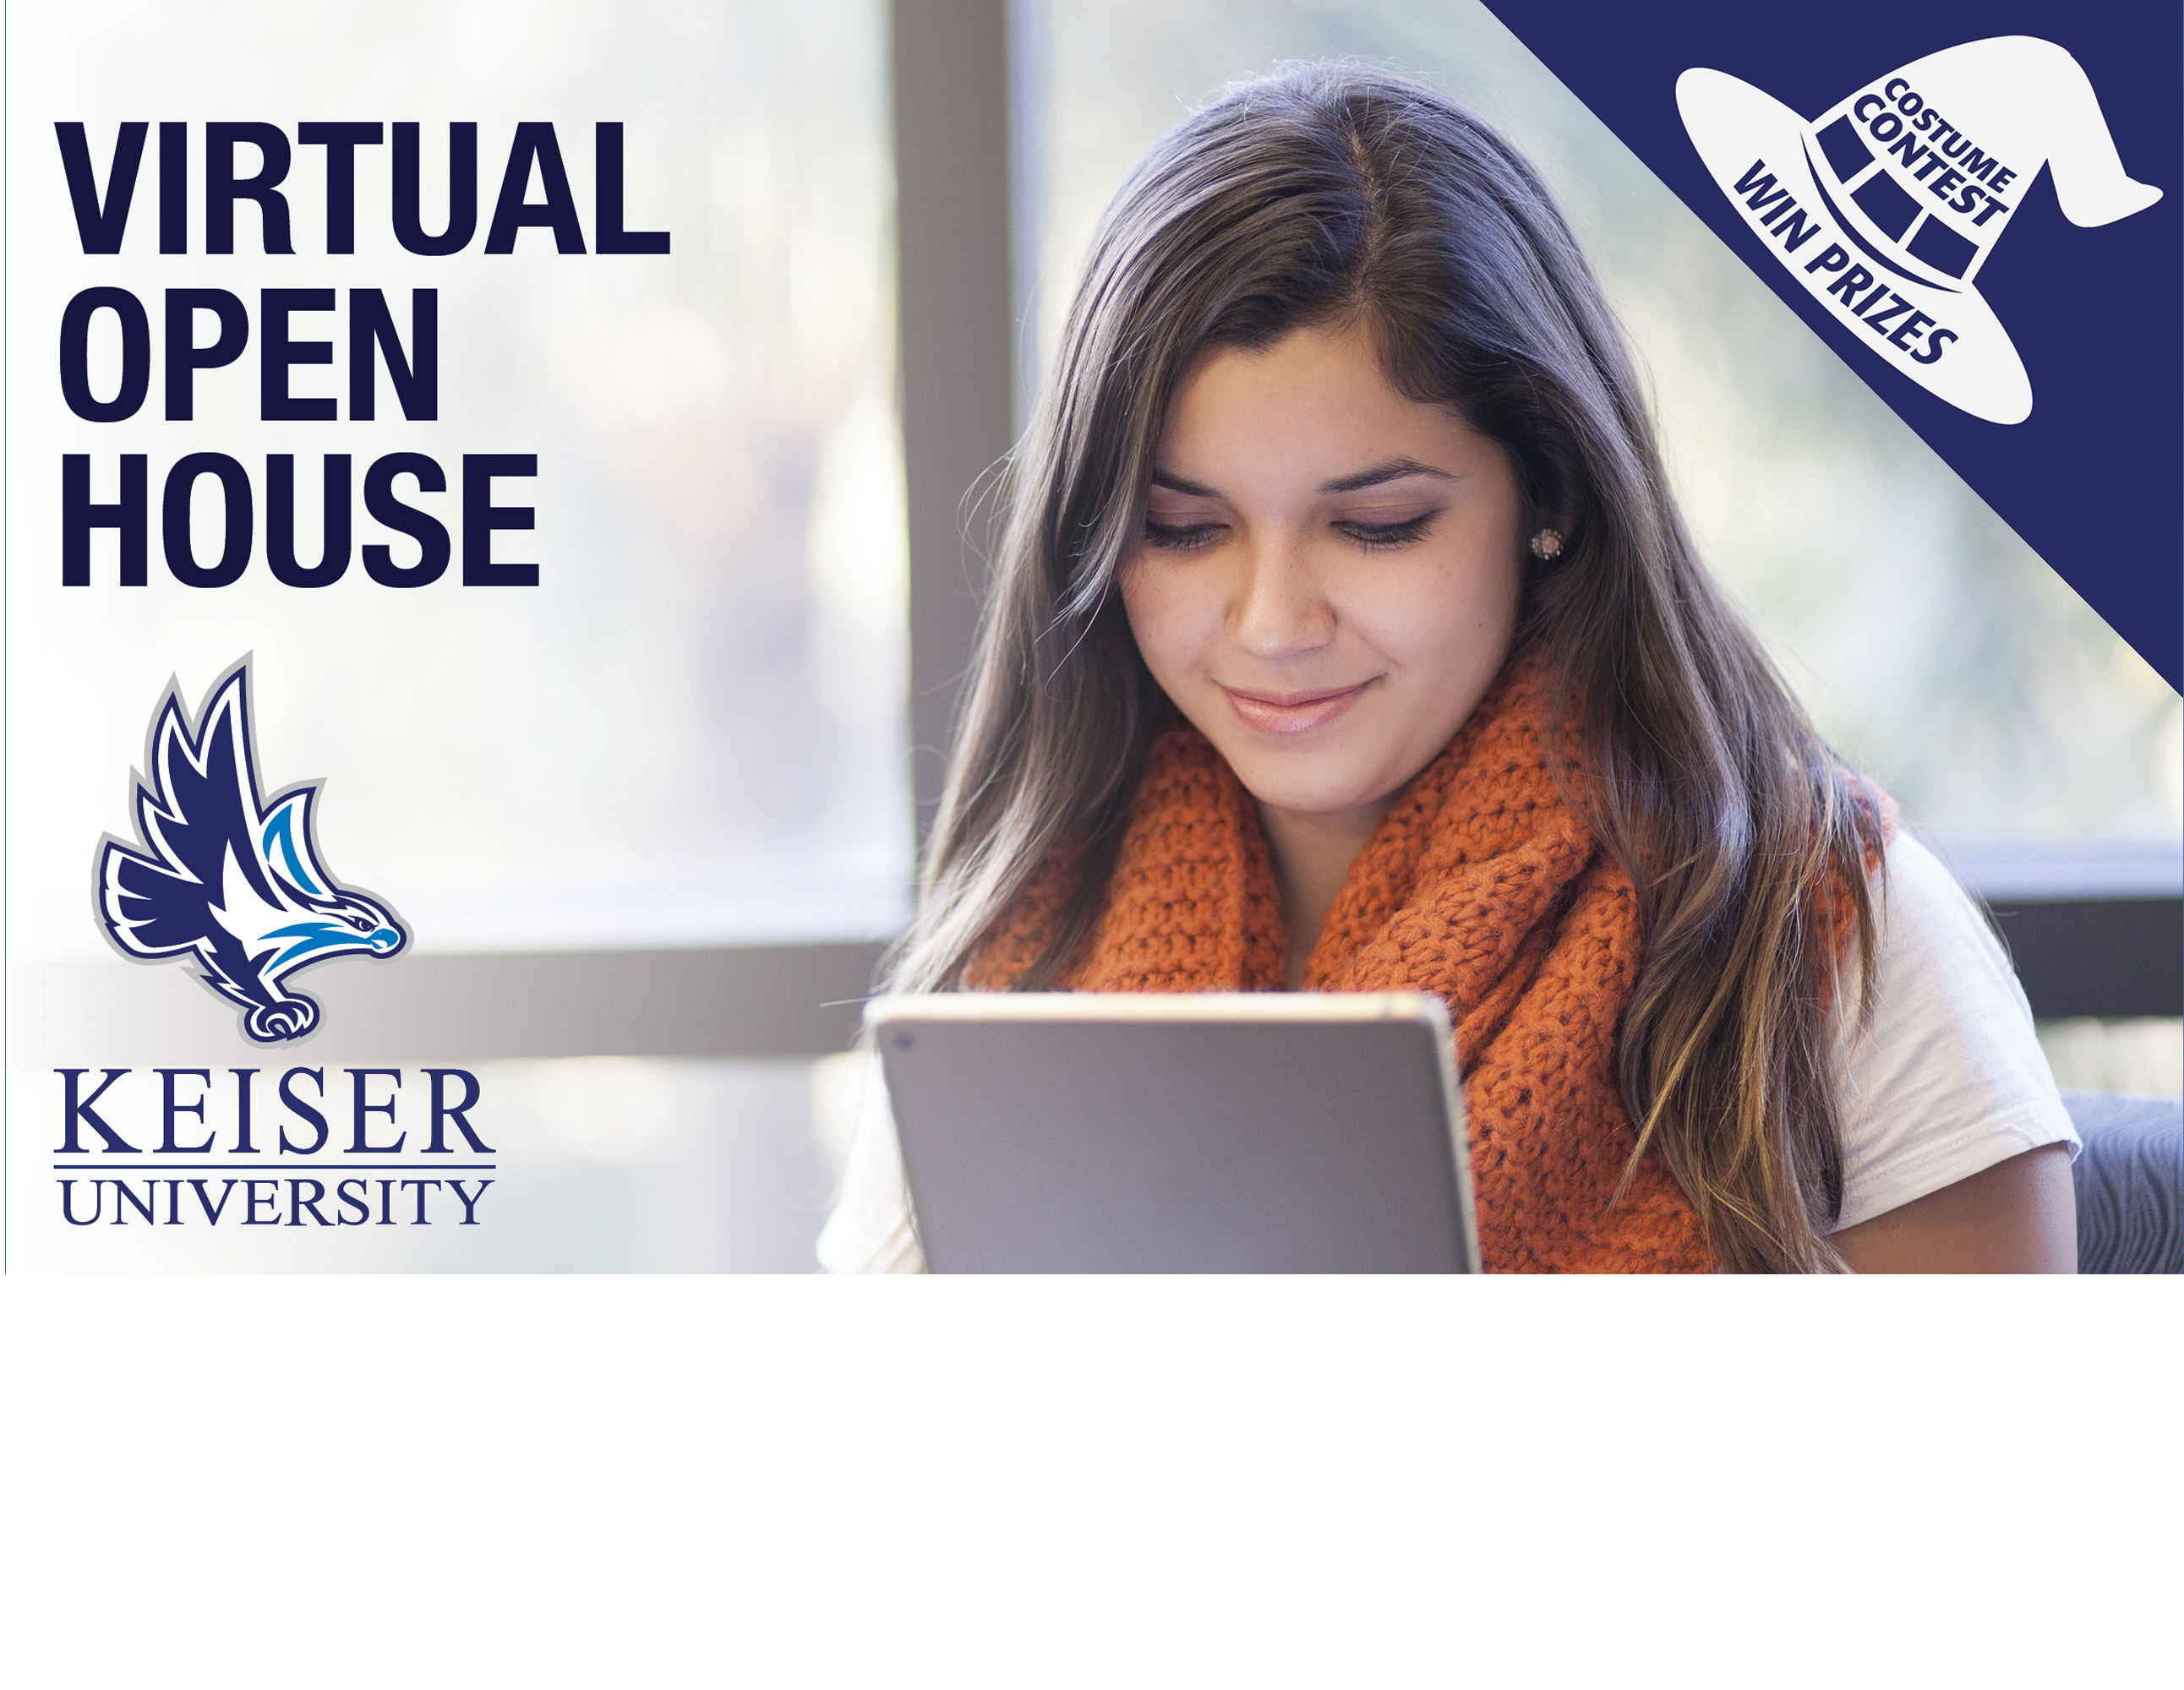 Keiser University Virtual Open House